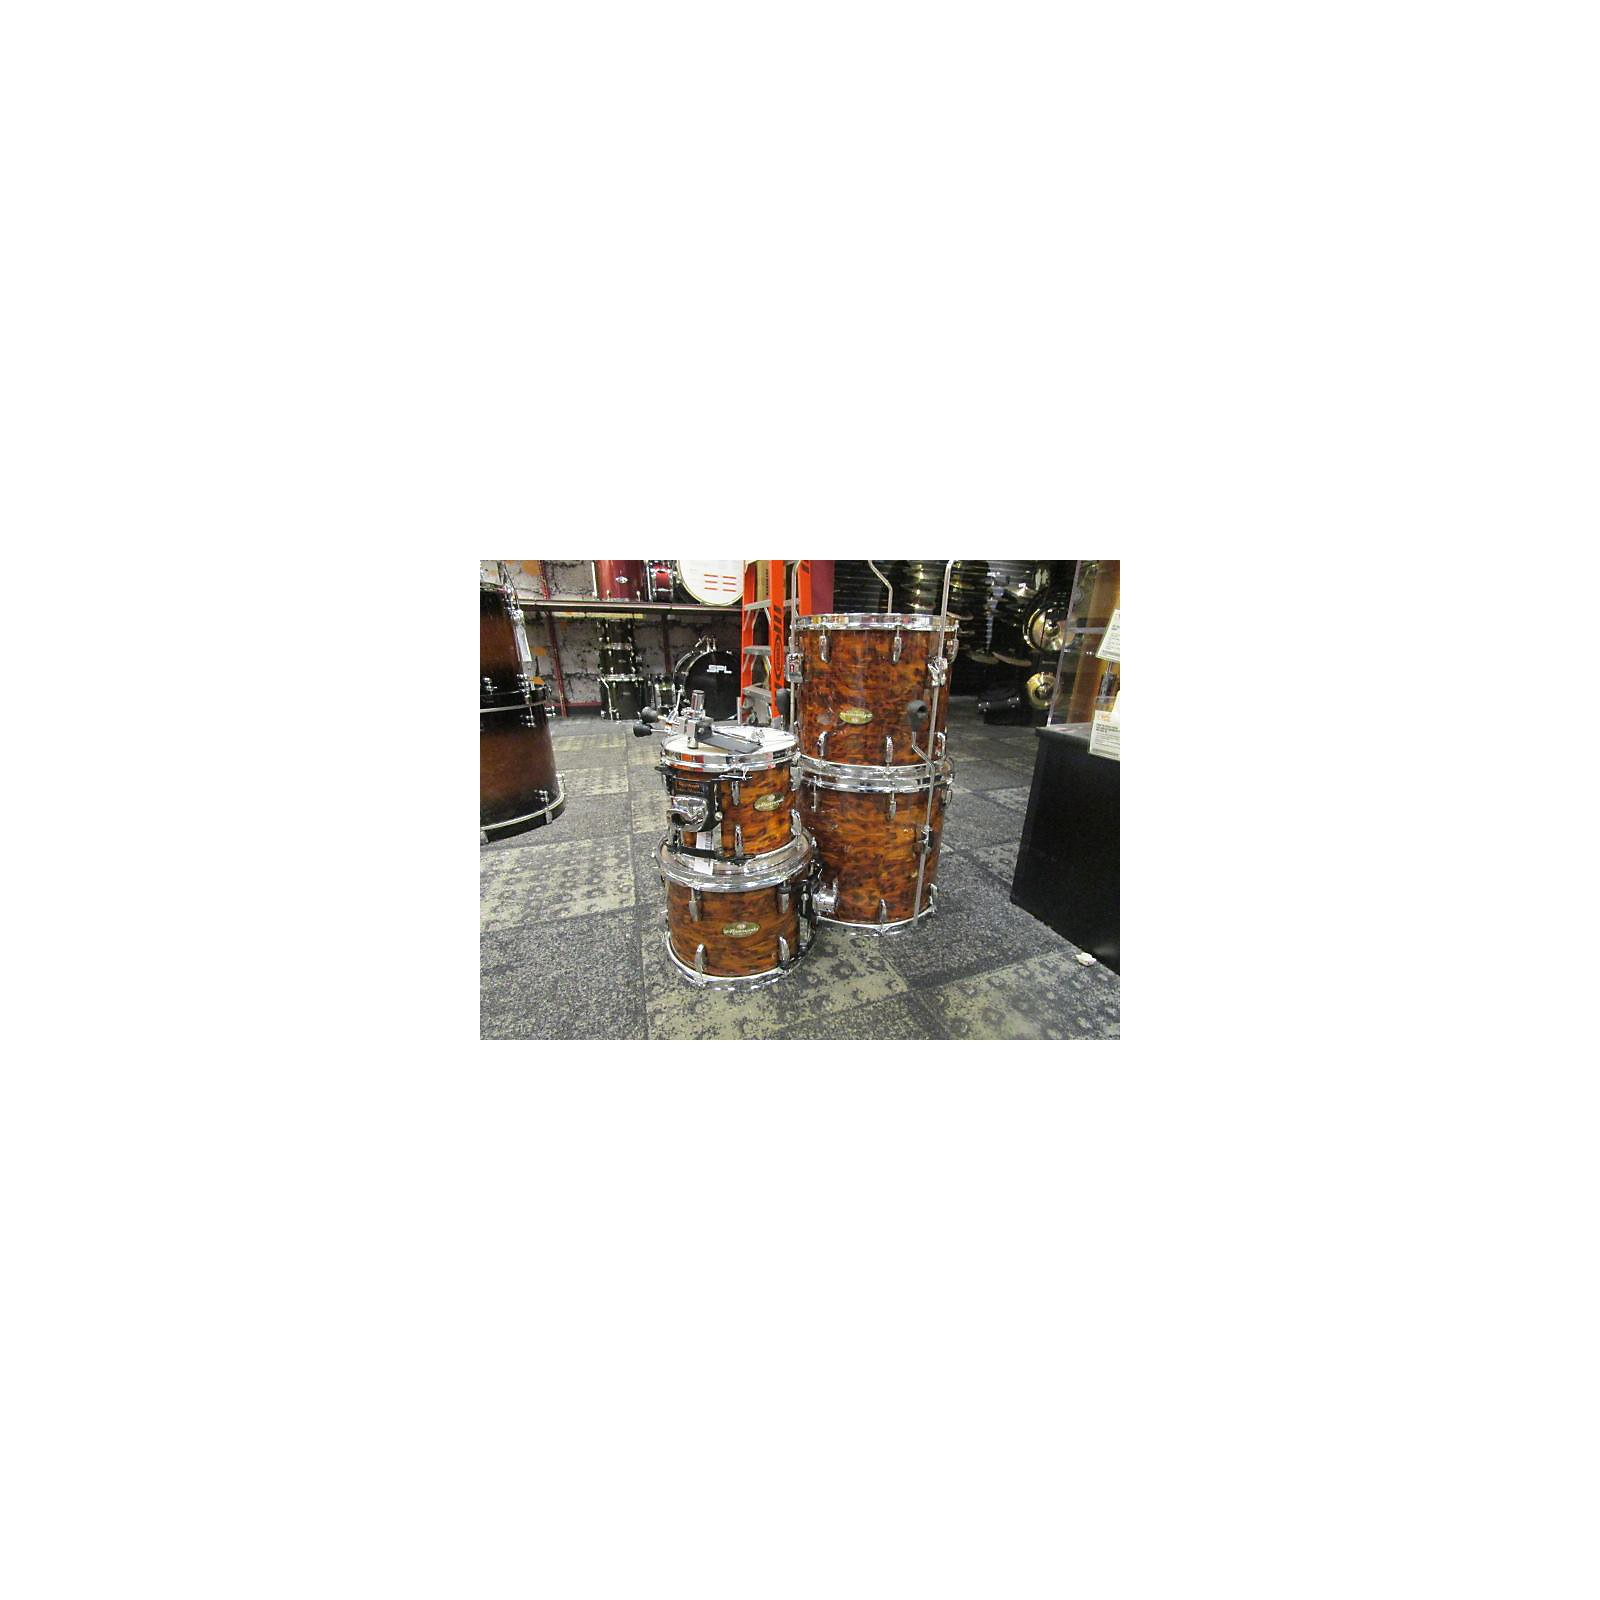 In Store Used Used Peral 4 piece Masterworks Jungle Exotic Drum Kit